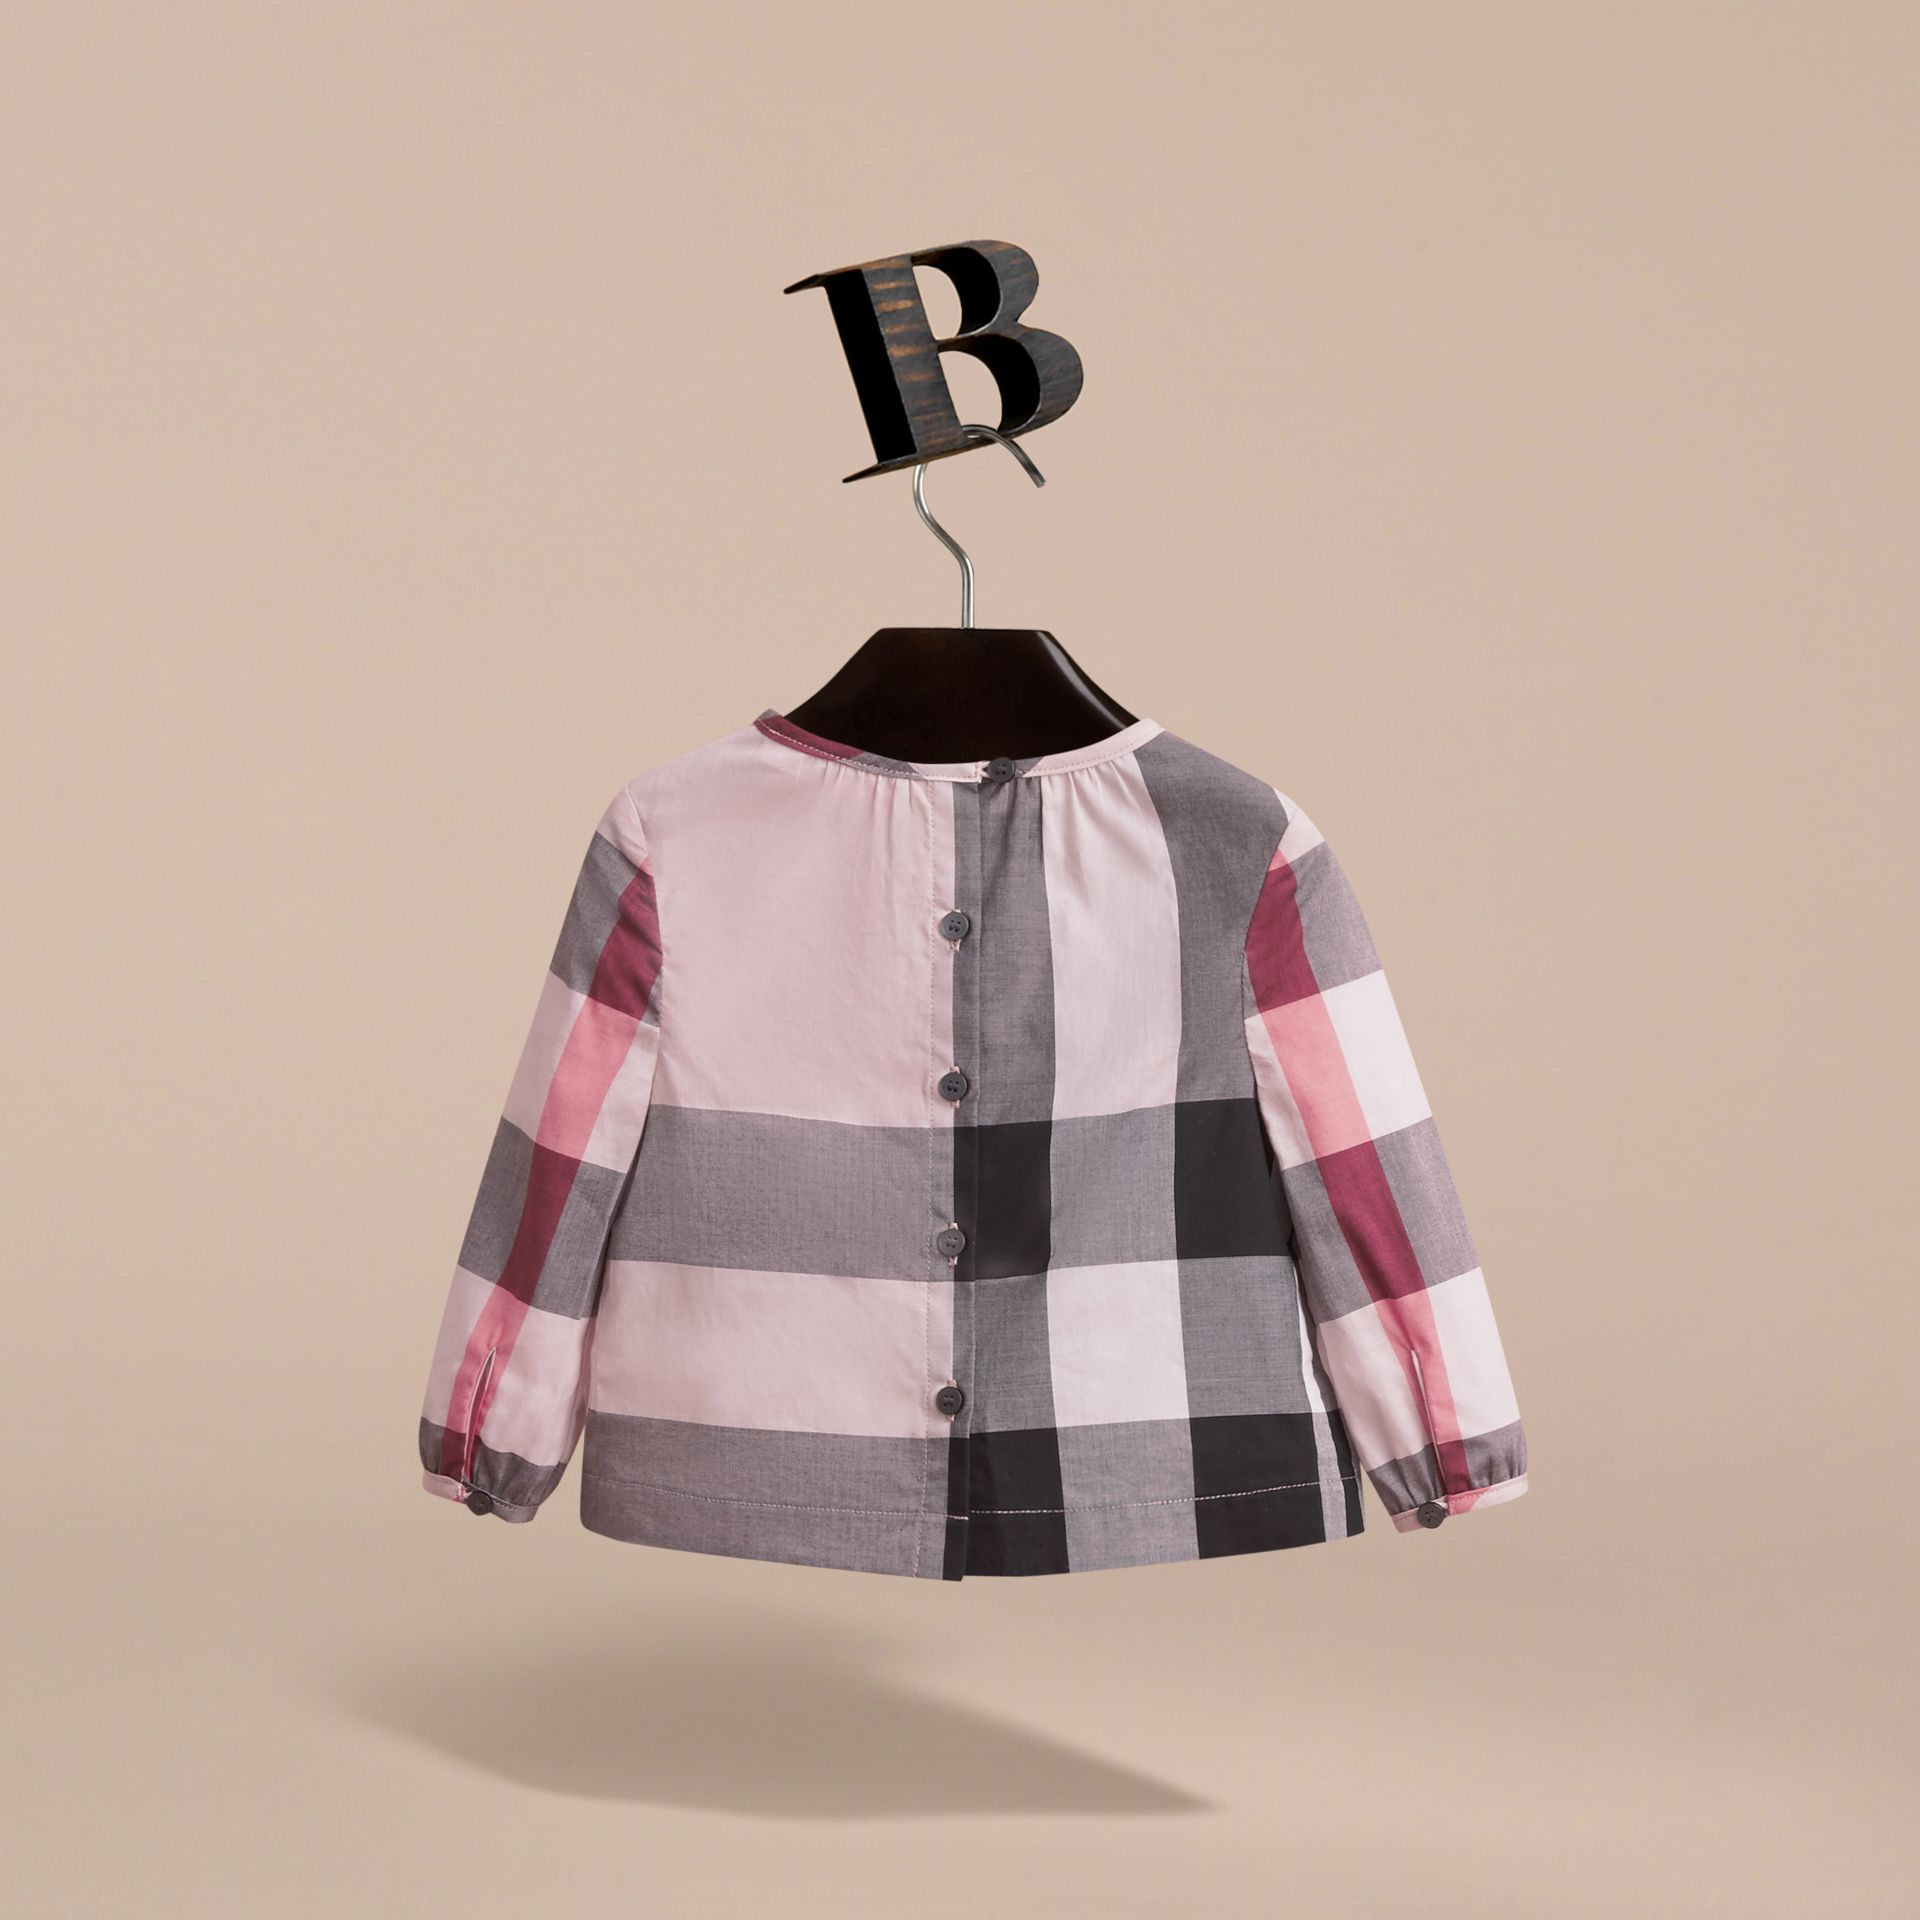 Ruffle Detail Check Cotton Top in Vintage Pink | Burberry United Kingdom - gallery image 3